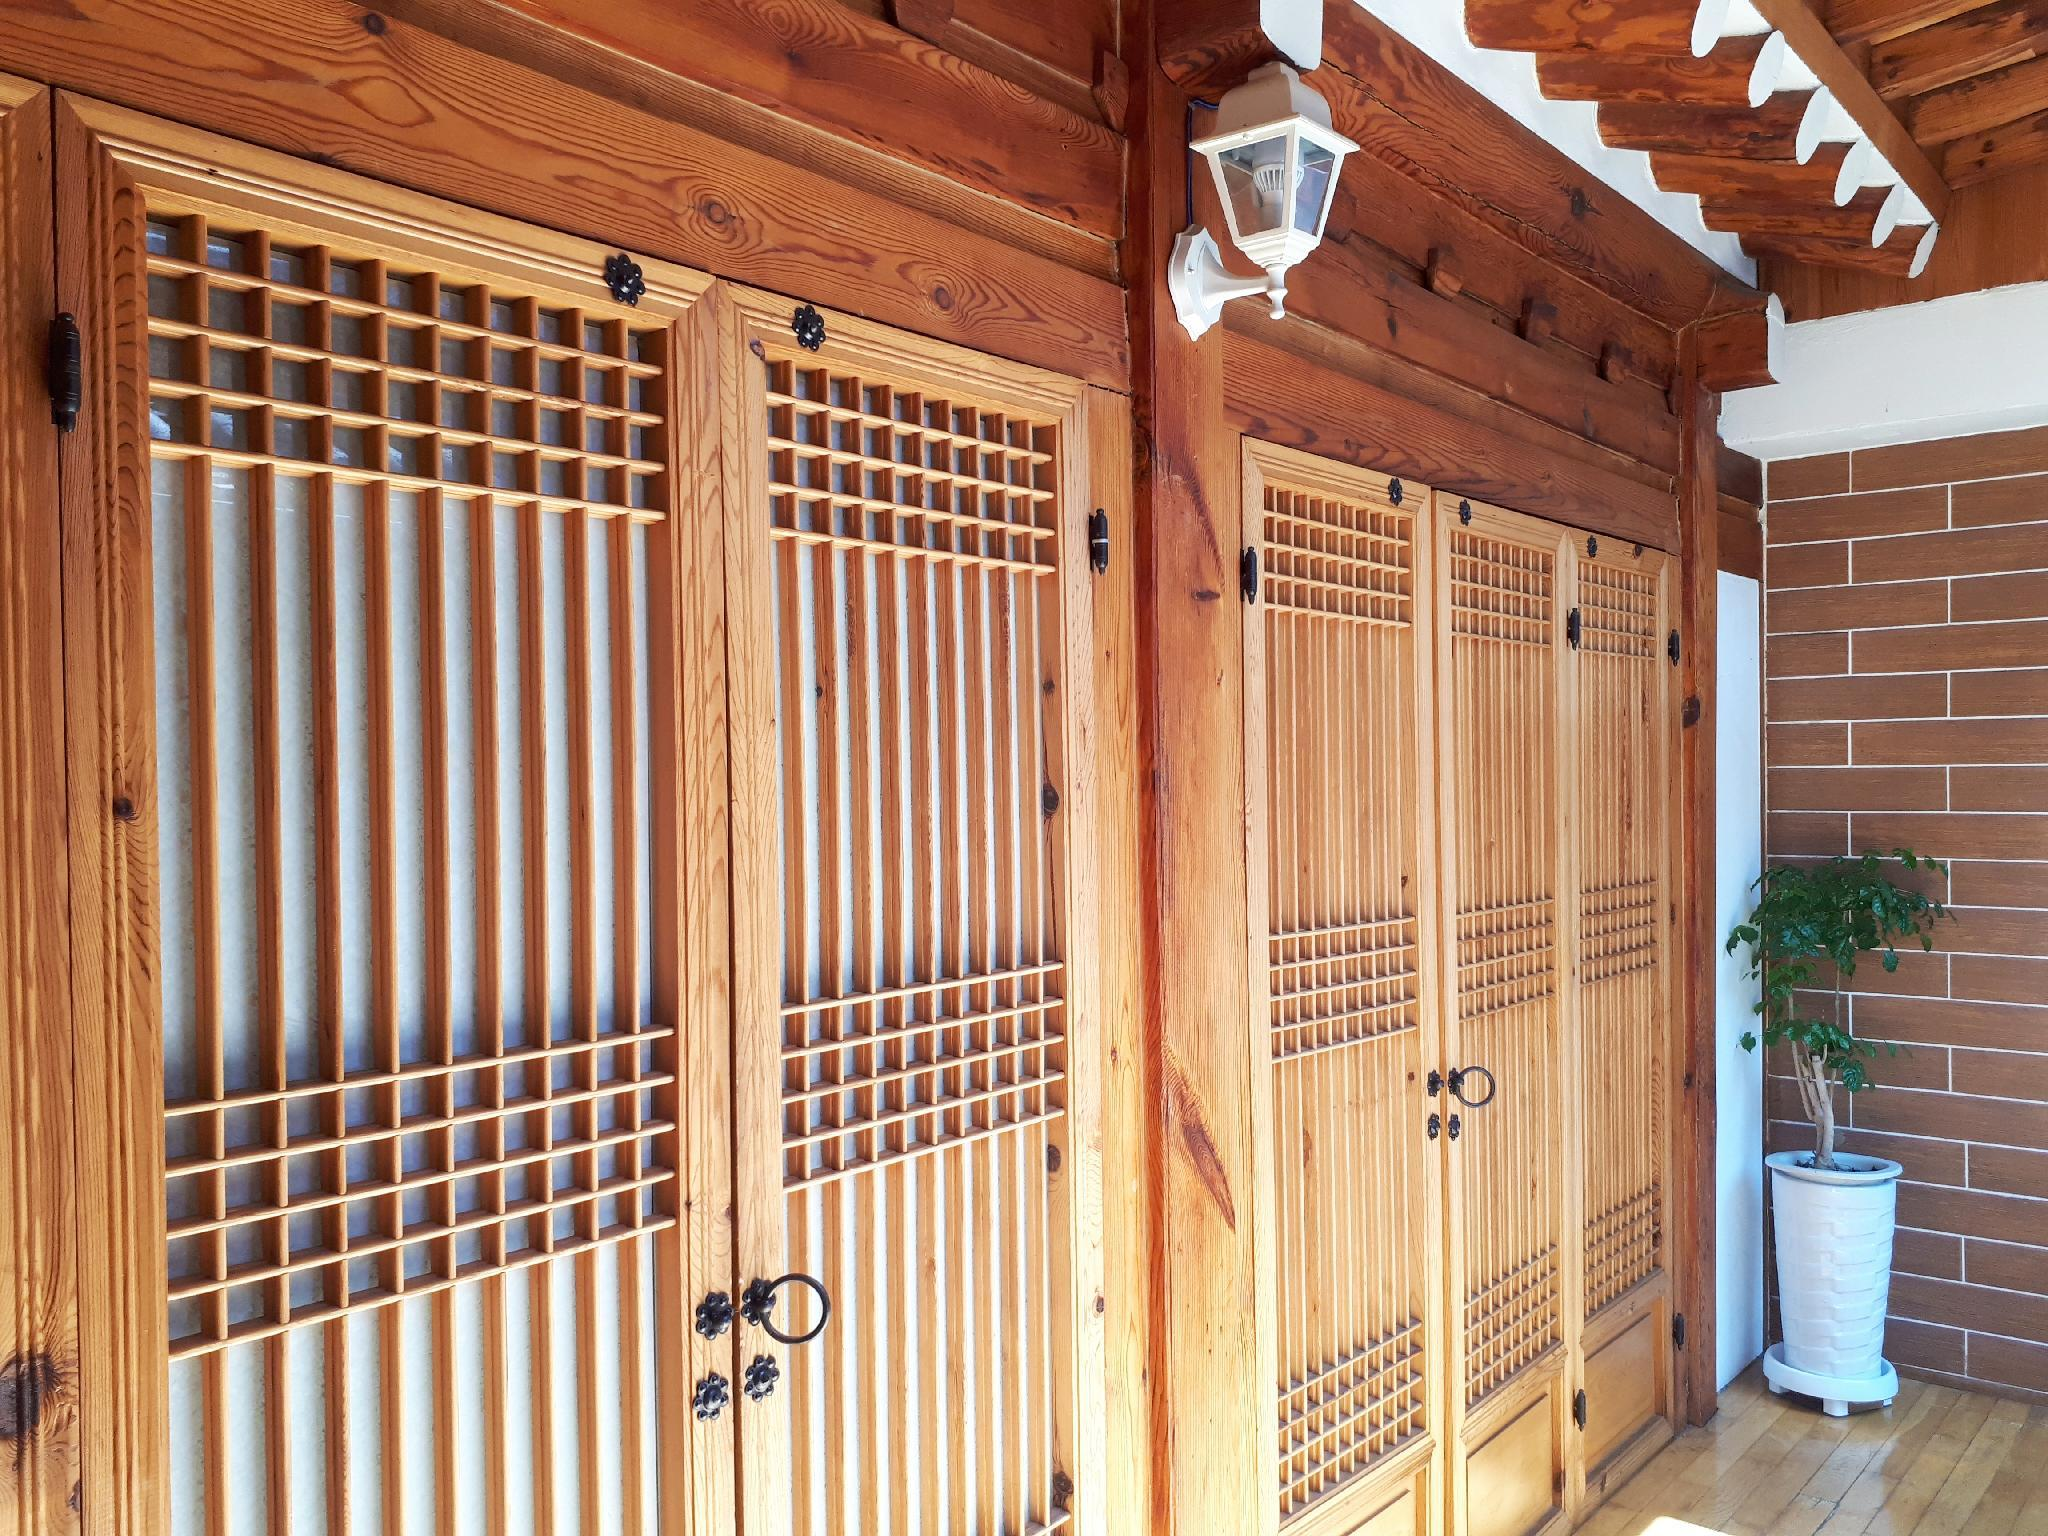 Review seoulstory hanok guesthouse